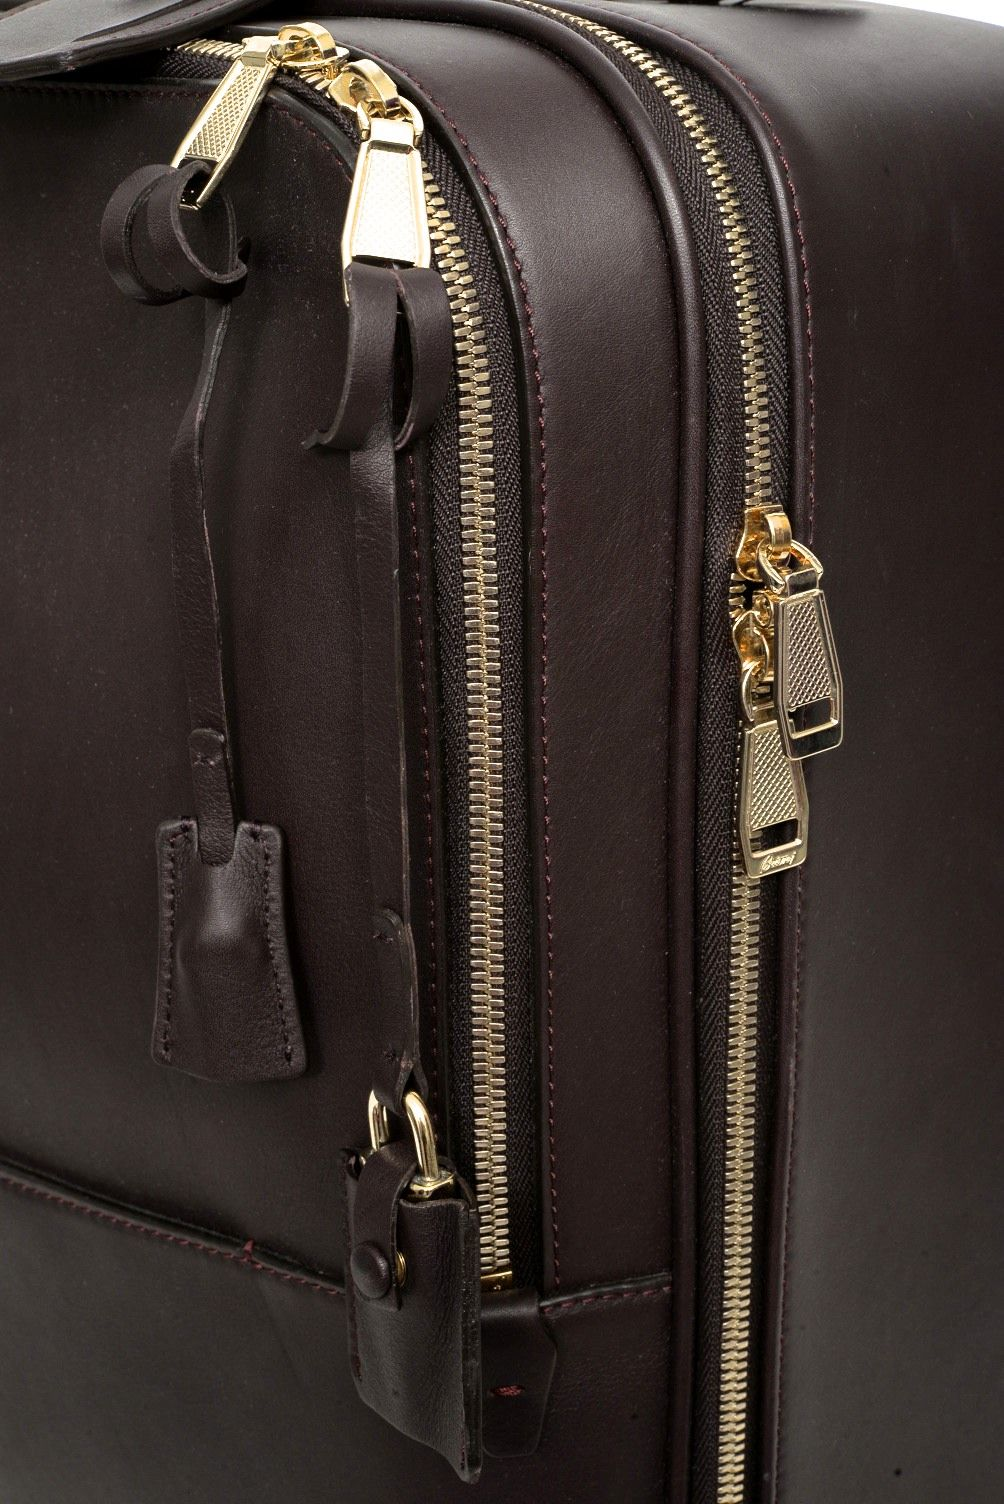 Bon voyage! Travel luxuriously, with this Brioni calf leather suitcase.     Shop Bags: http://www.frieschskys.com/bags     #frieschskys #mensfashion #fashion #mensstyle #style #moda #menswear #dapper #stylish #MadeInItaly #Italy #couture #highfashion #designer #shopping